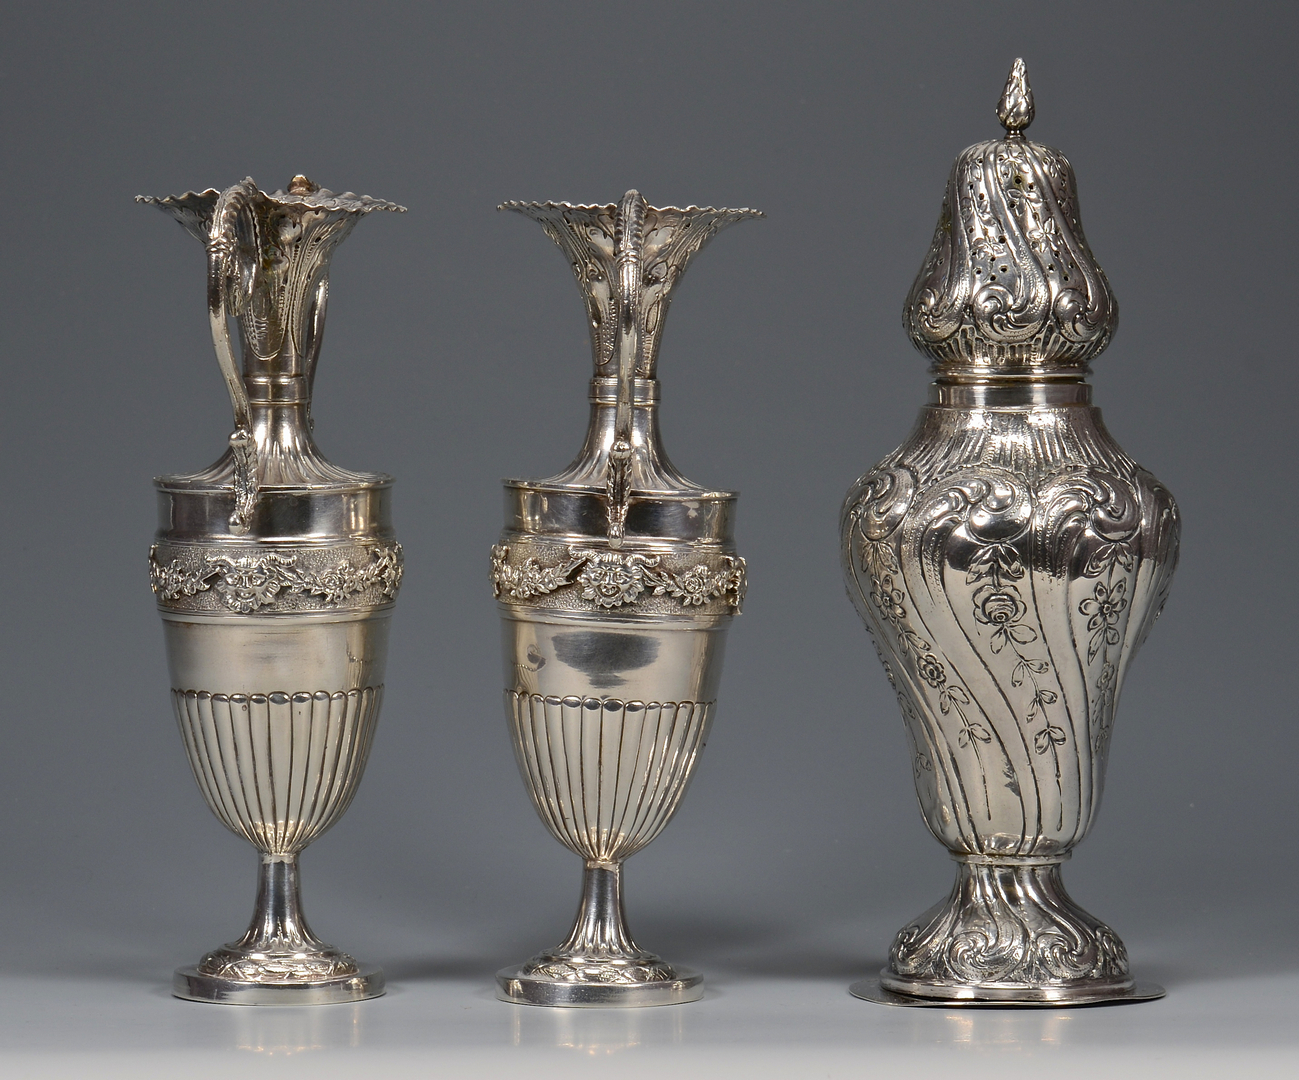 Lot 31: Hanau Silver Urns and Caster